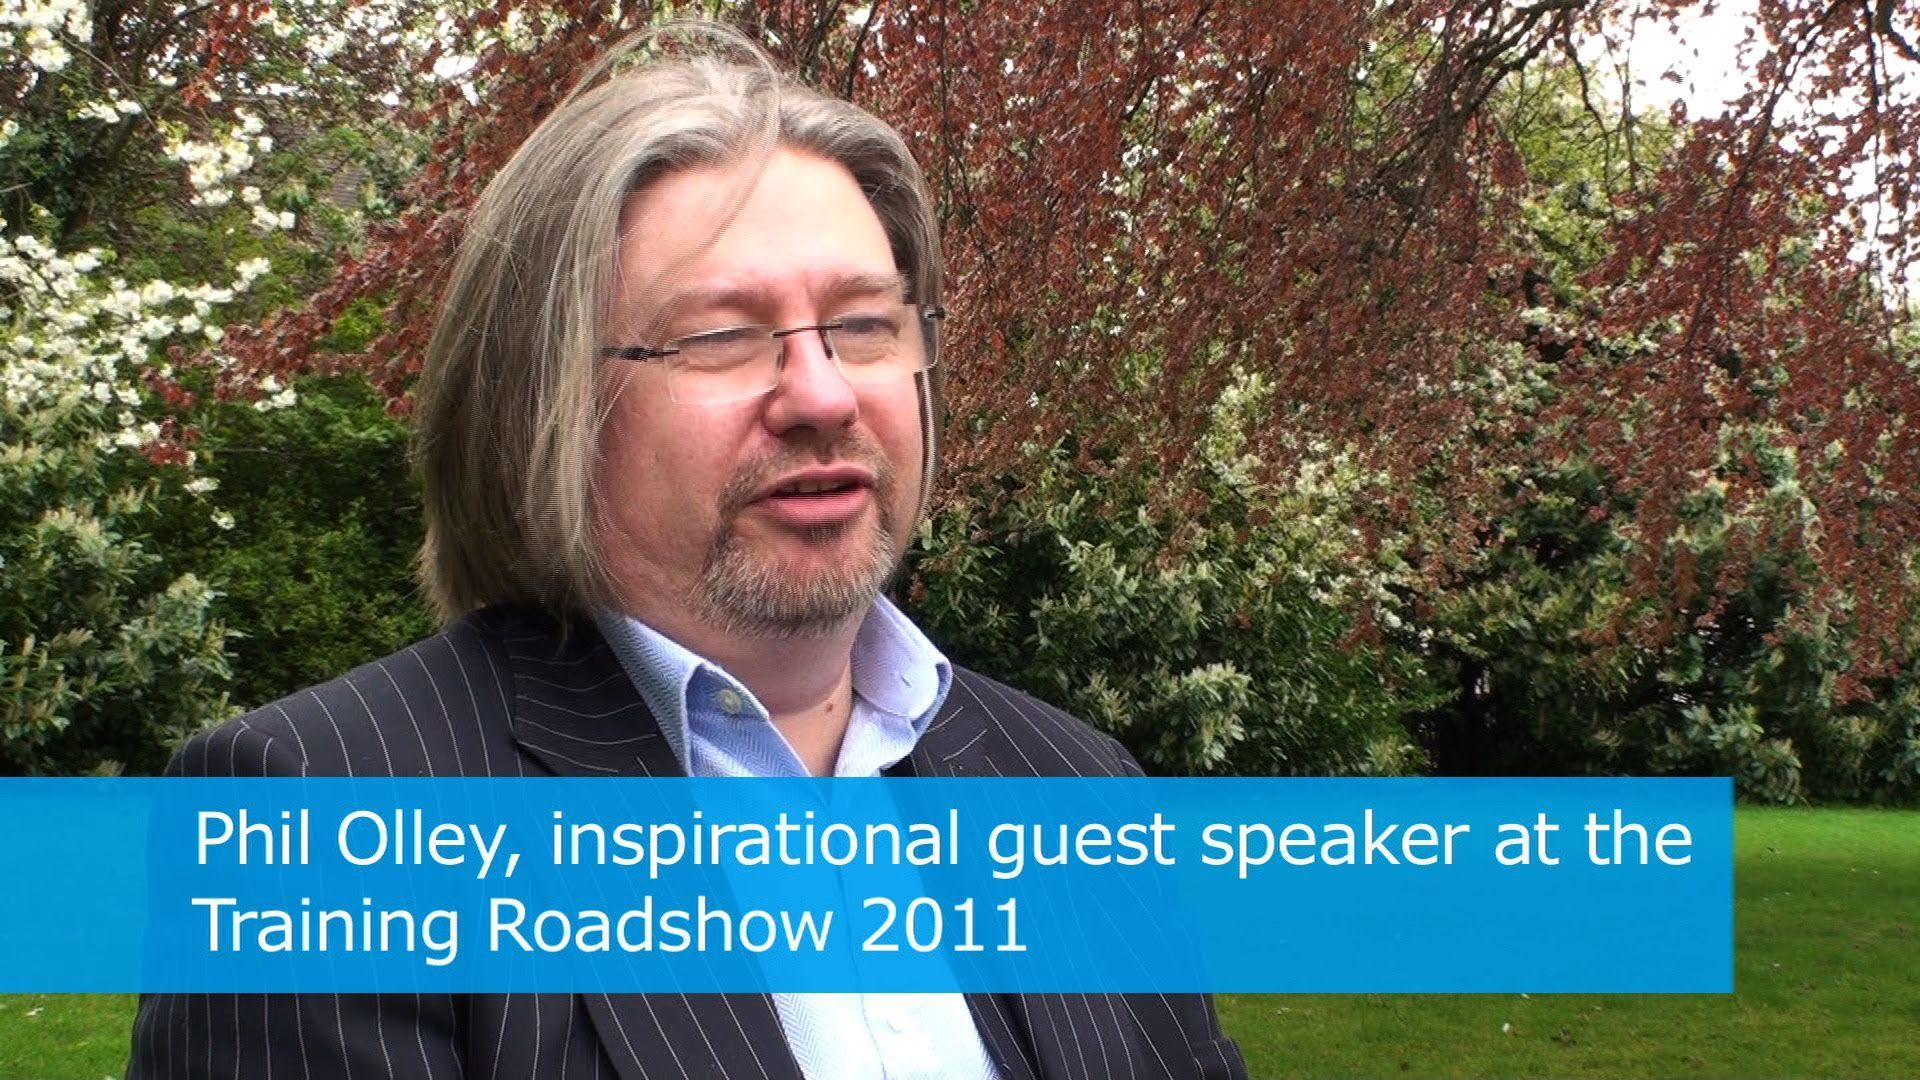 Training Roadshow Guest Speaker Phil Olley In